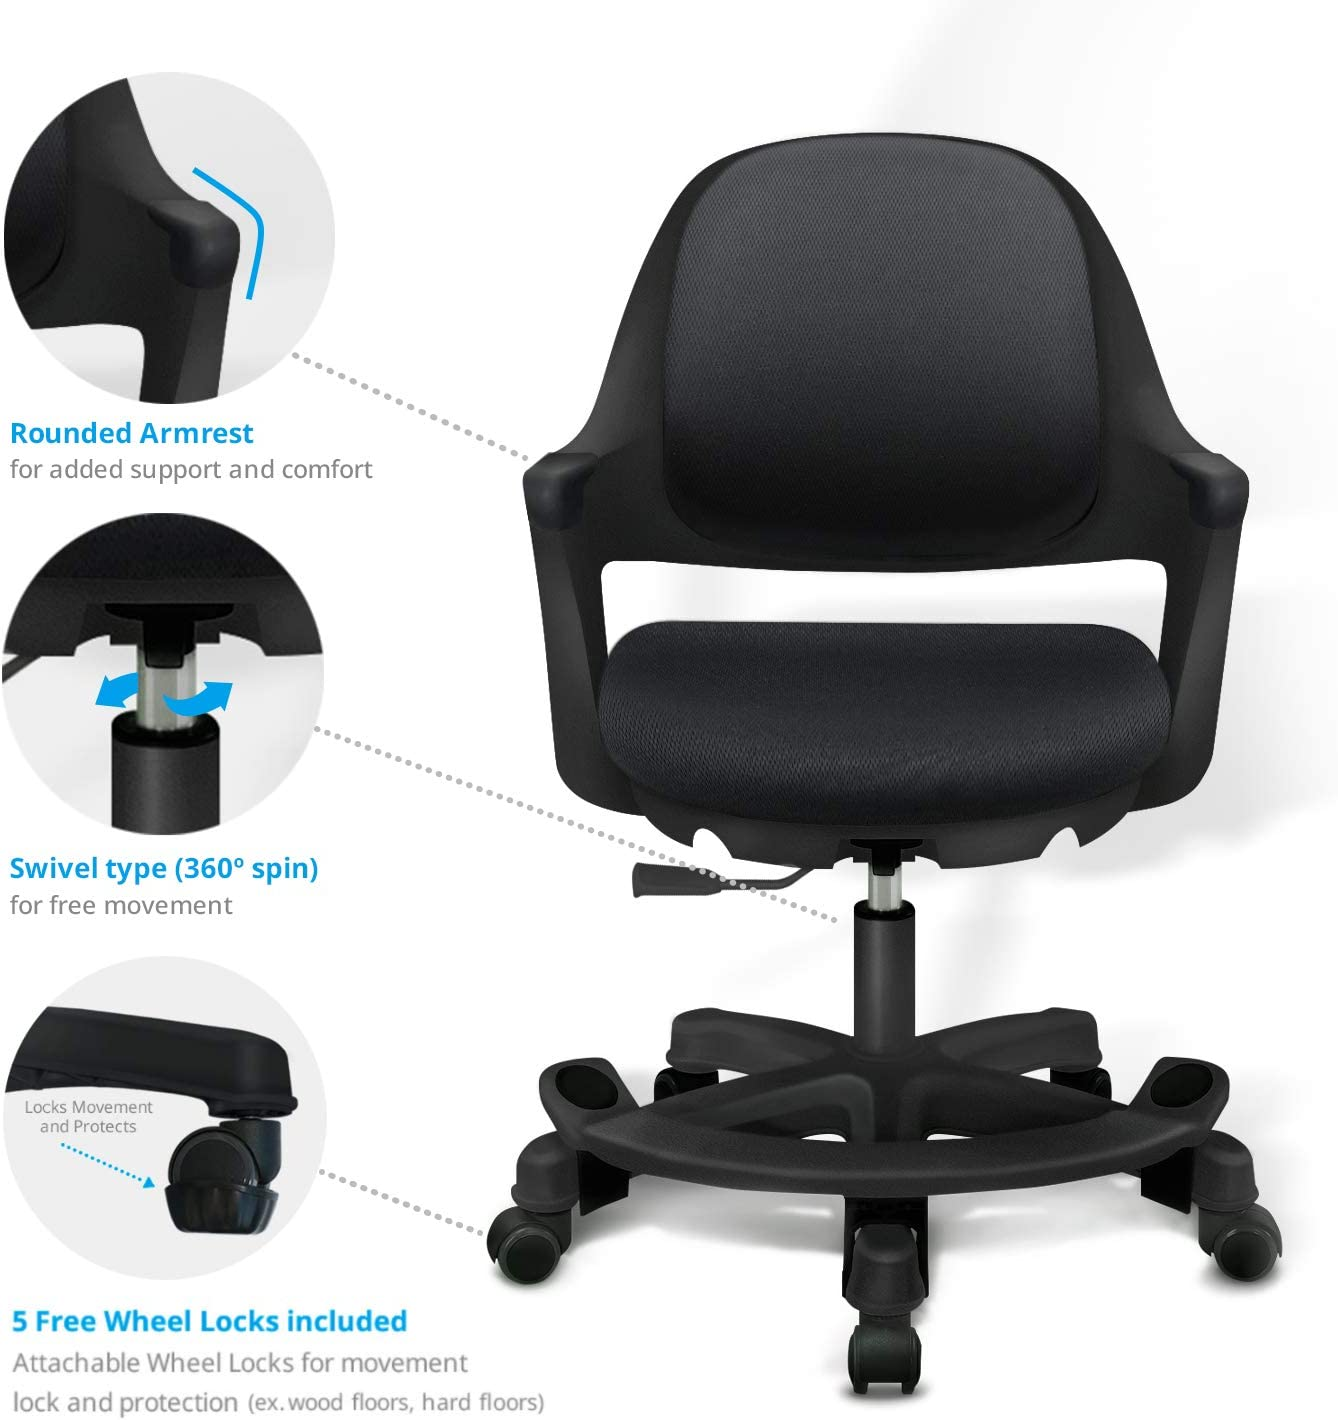 SitRite Ergonomic Kids Desk Chair Children Study Student Computer Home School Office Height Control Easy To Assemble (Piano Black)